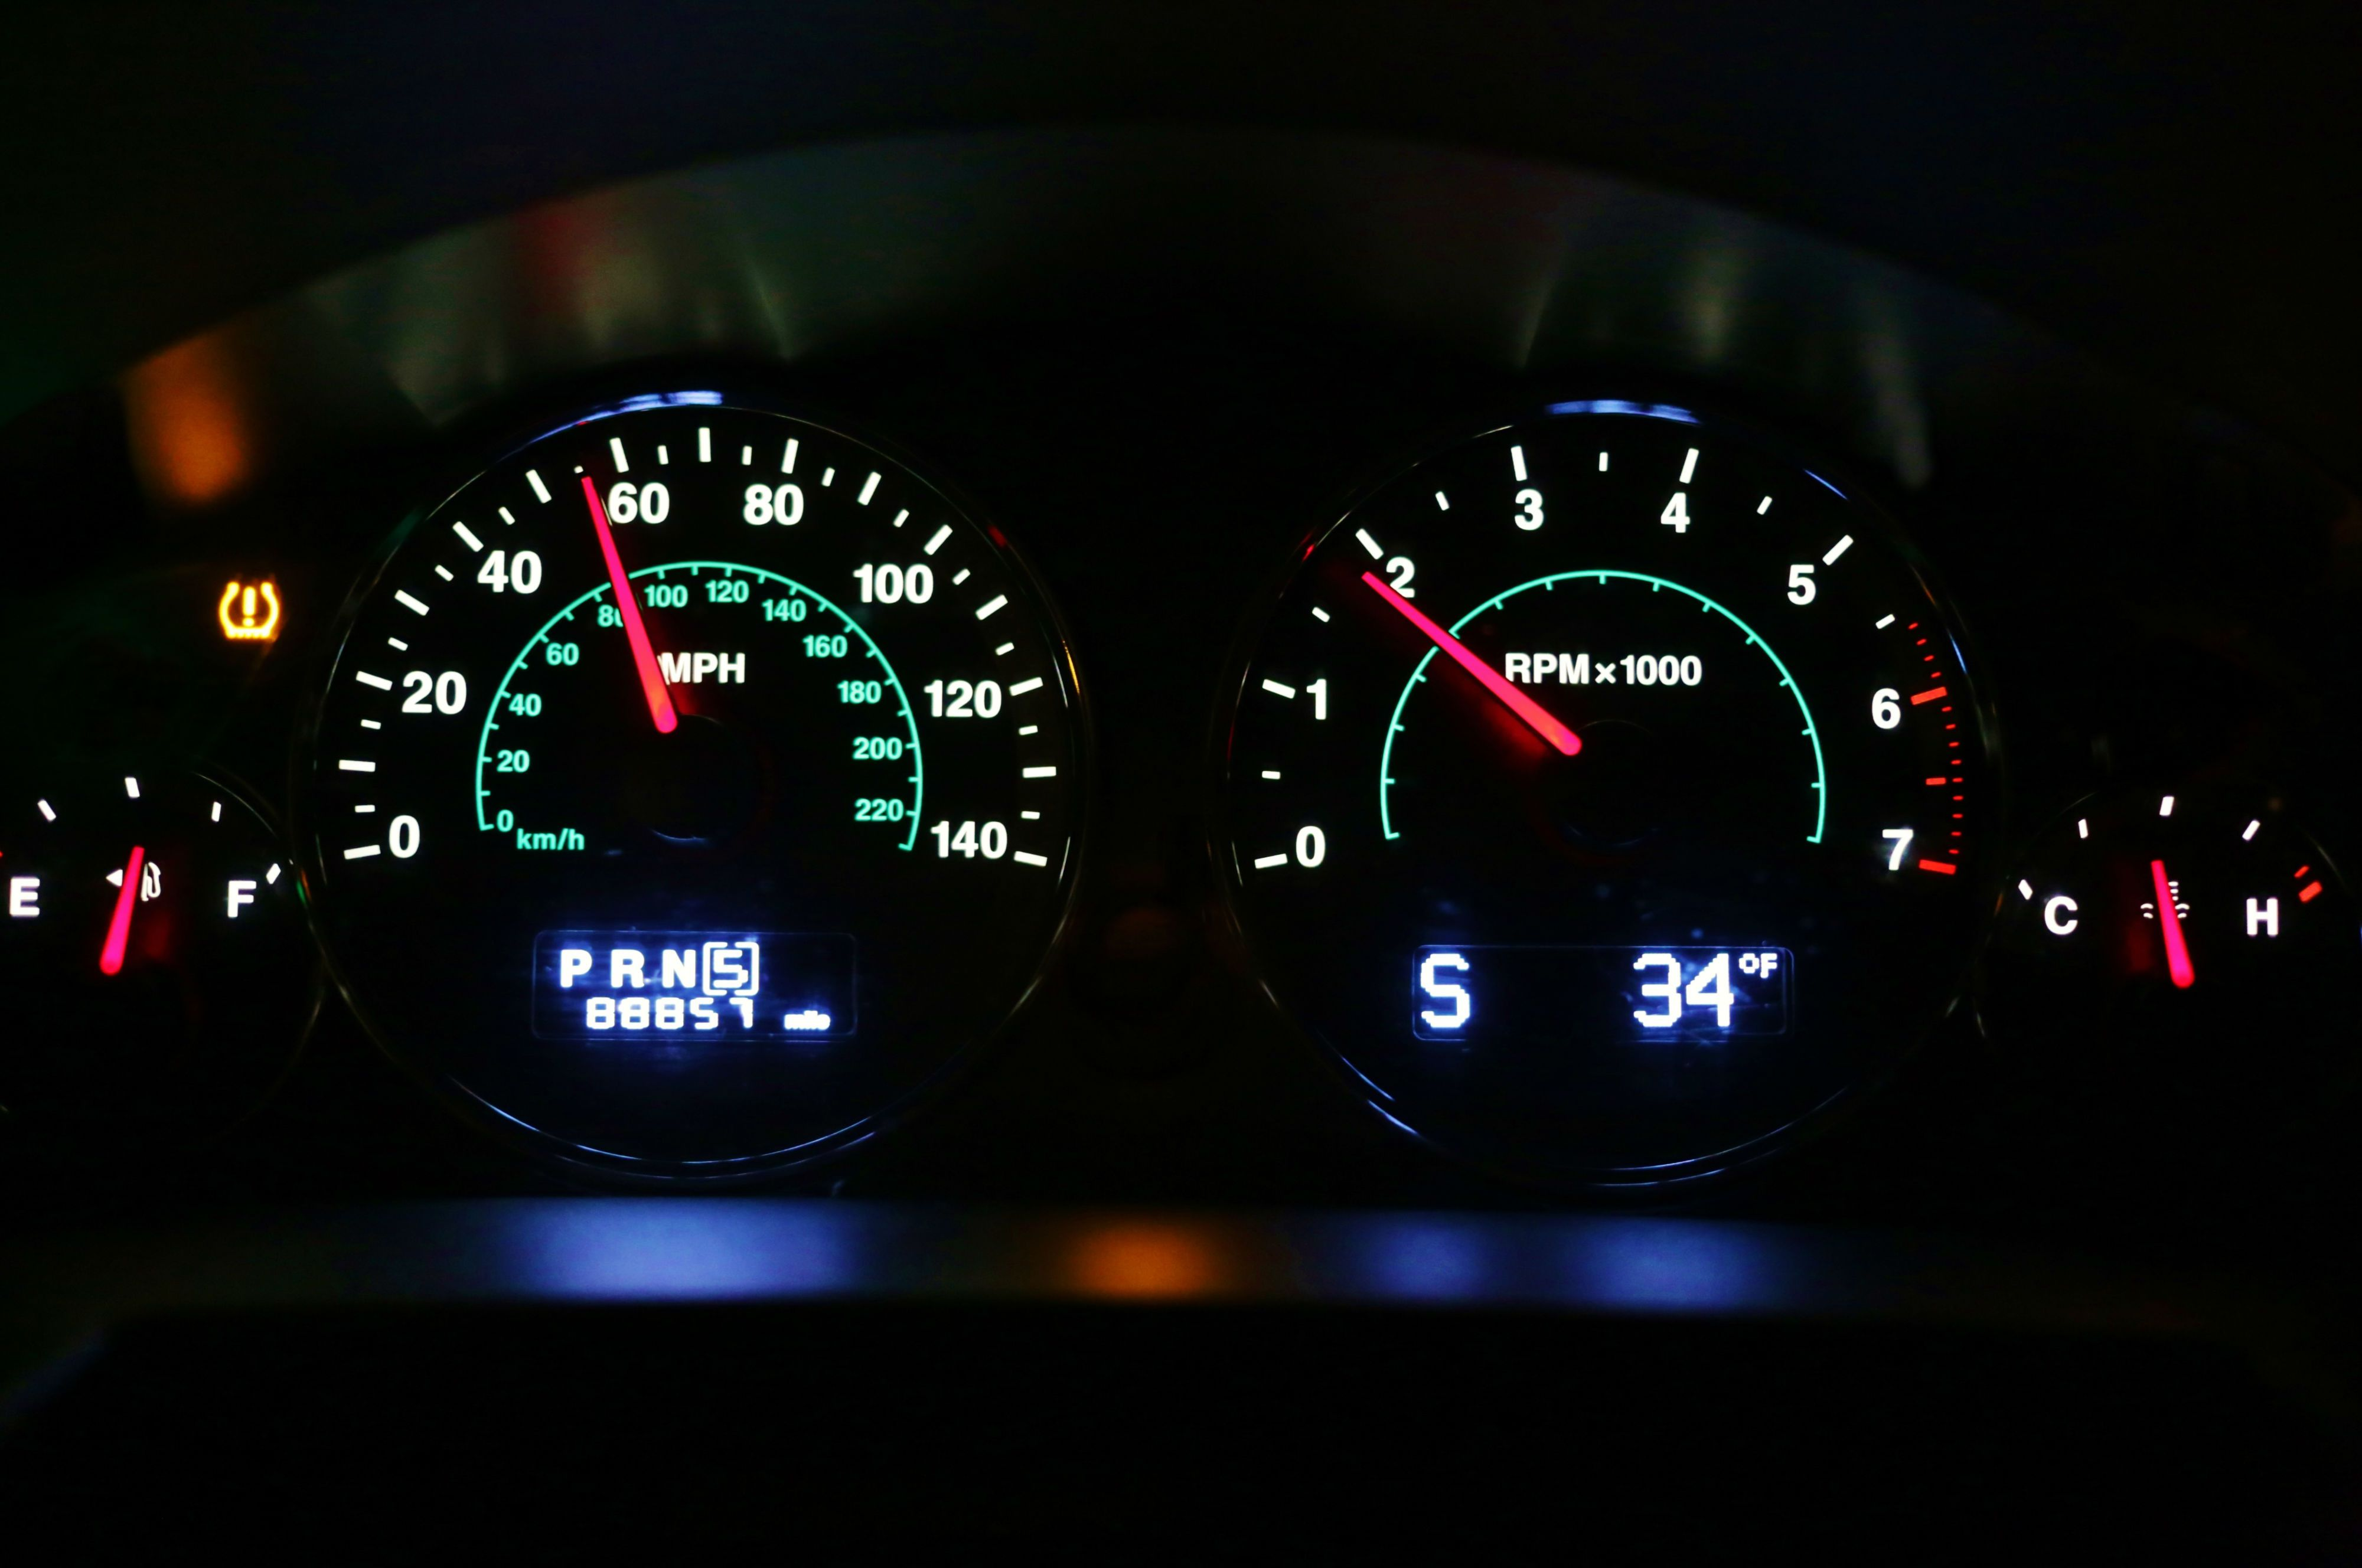 What To Do When Your ABS Light Comes On - Car sign on dashboarddont panic common dashboard warnings you need to know part